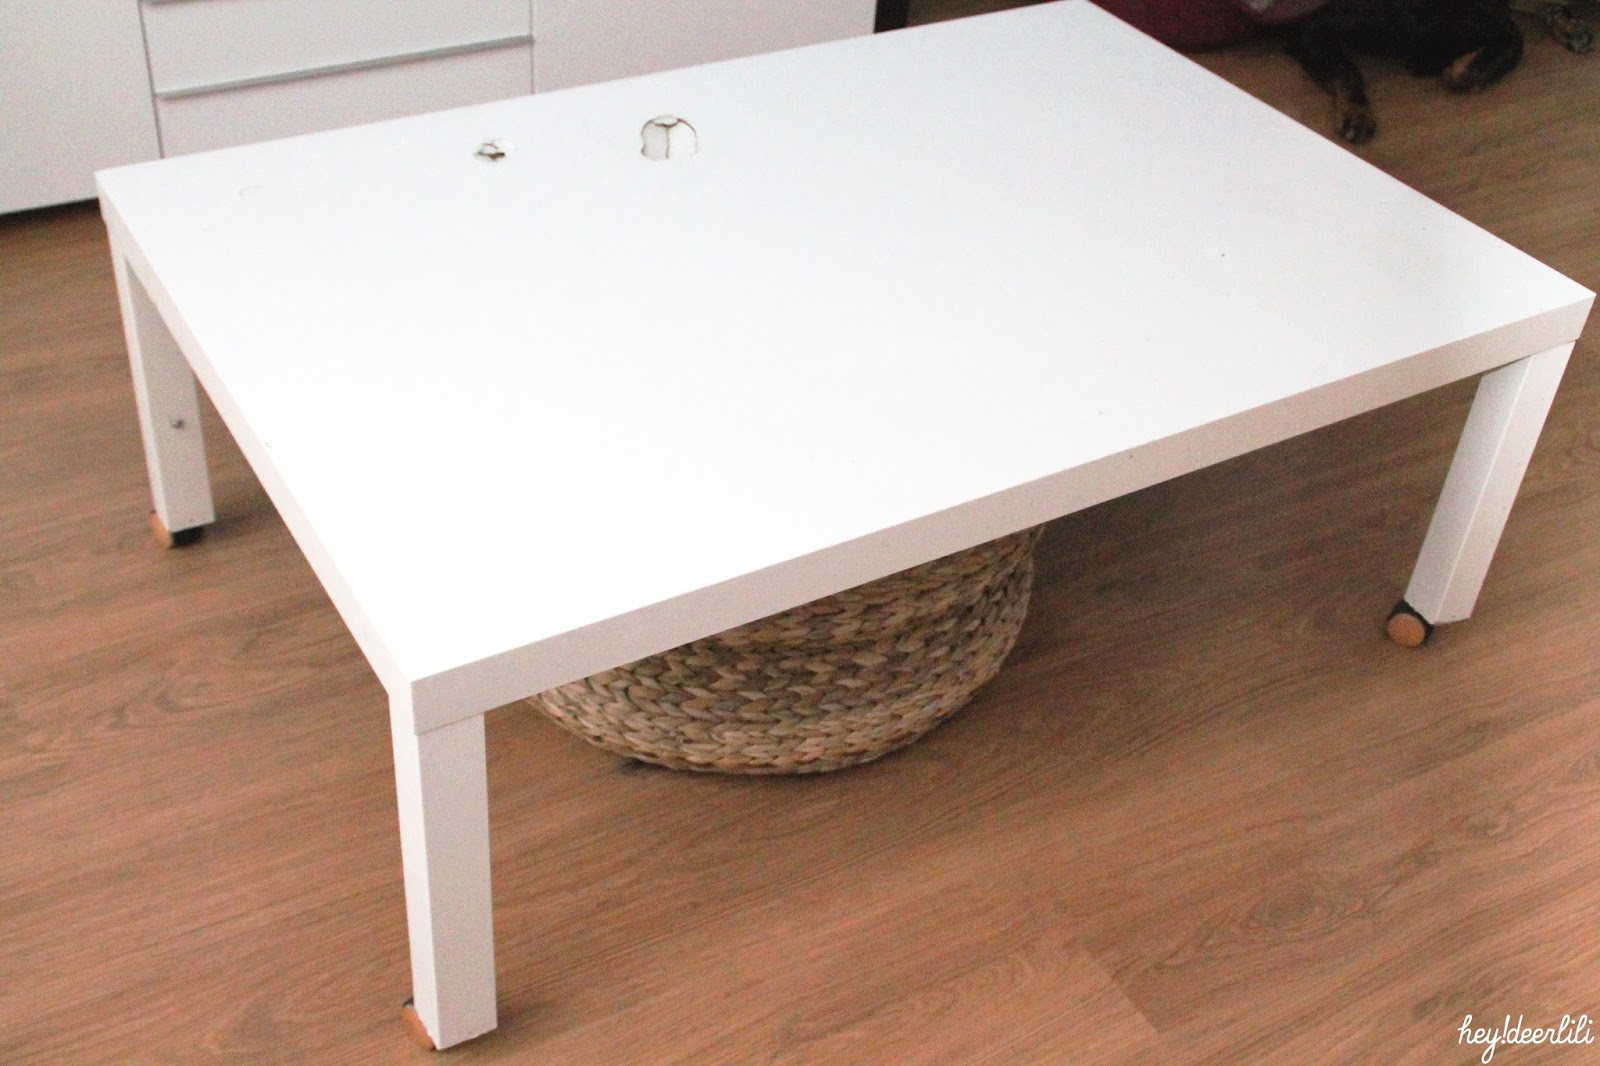 Hey deer lili retaper un basique la table basse ikea for Table qui s agrandit ikea